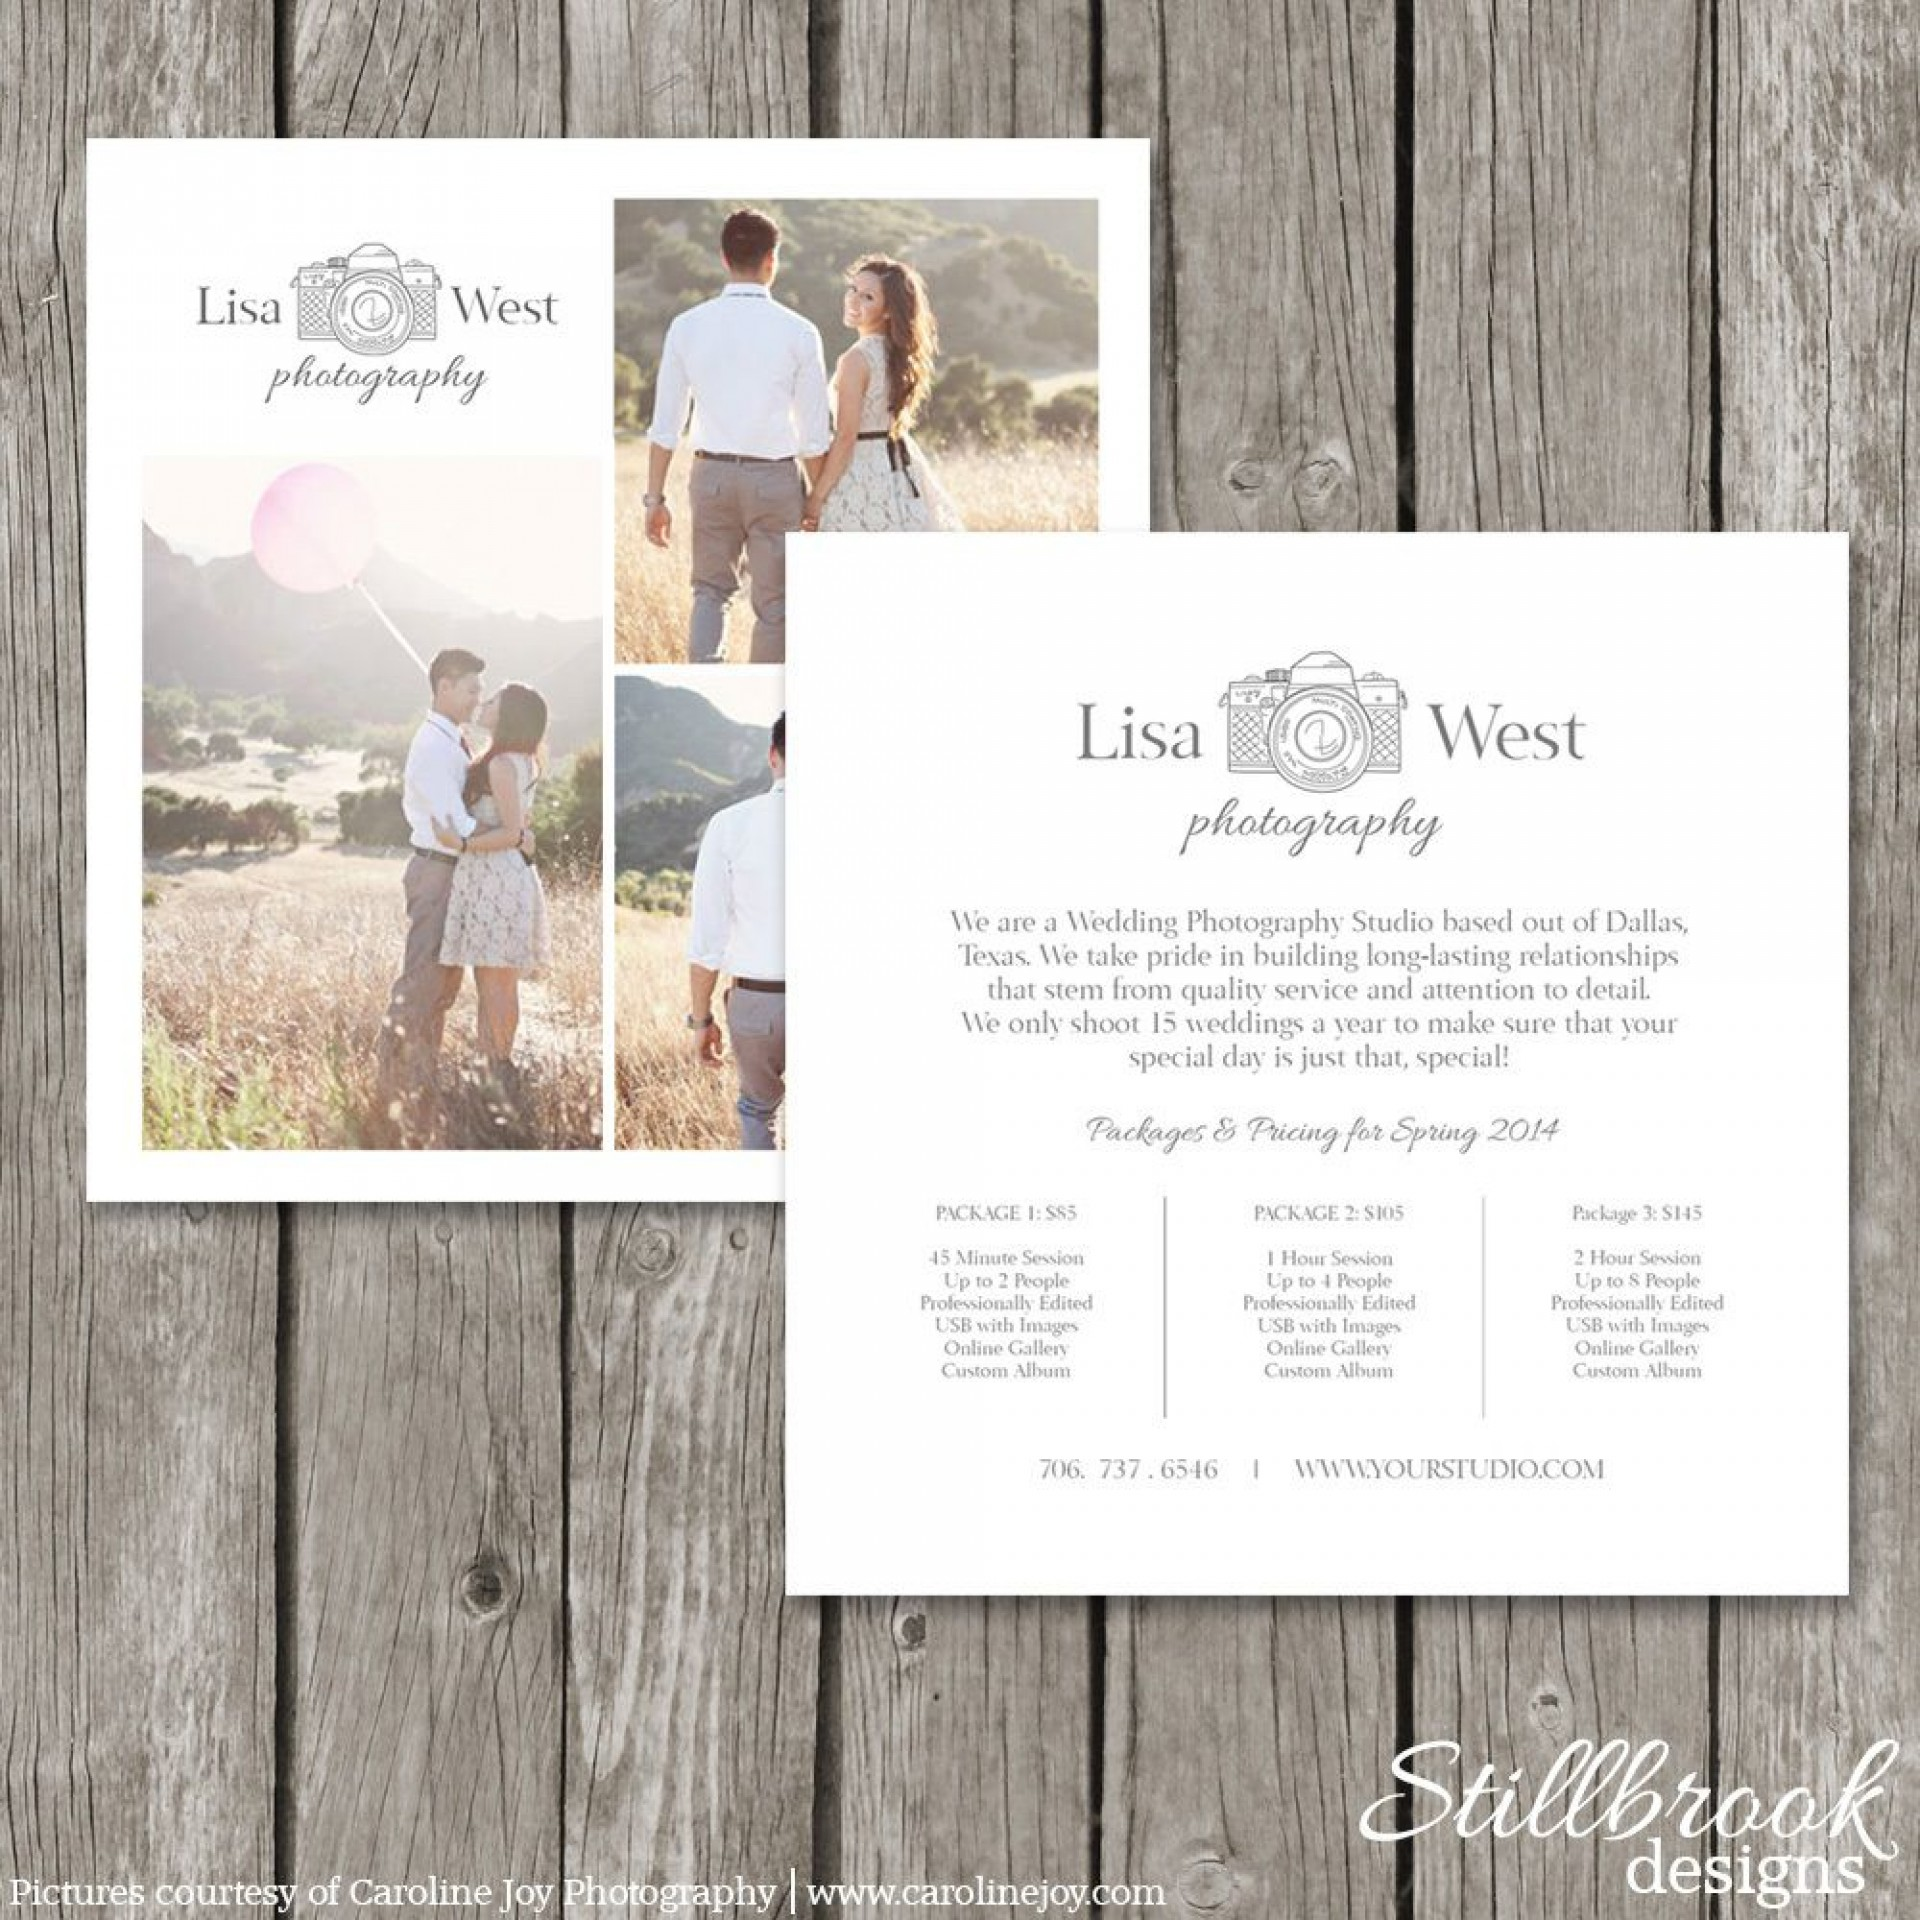 008 Sensational Free Photography Package Template Design  Pricing1920